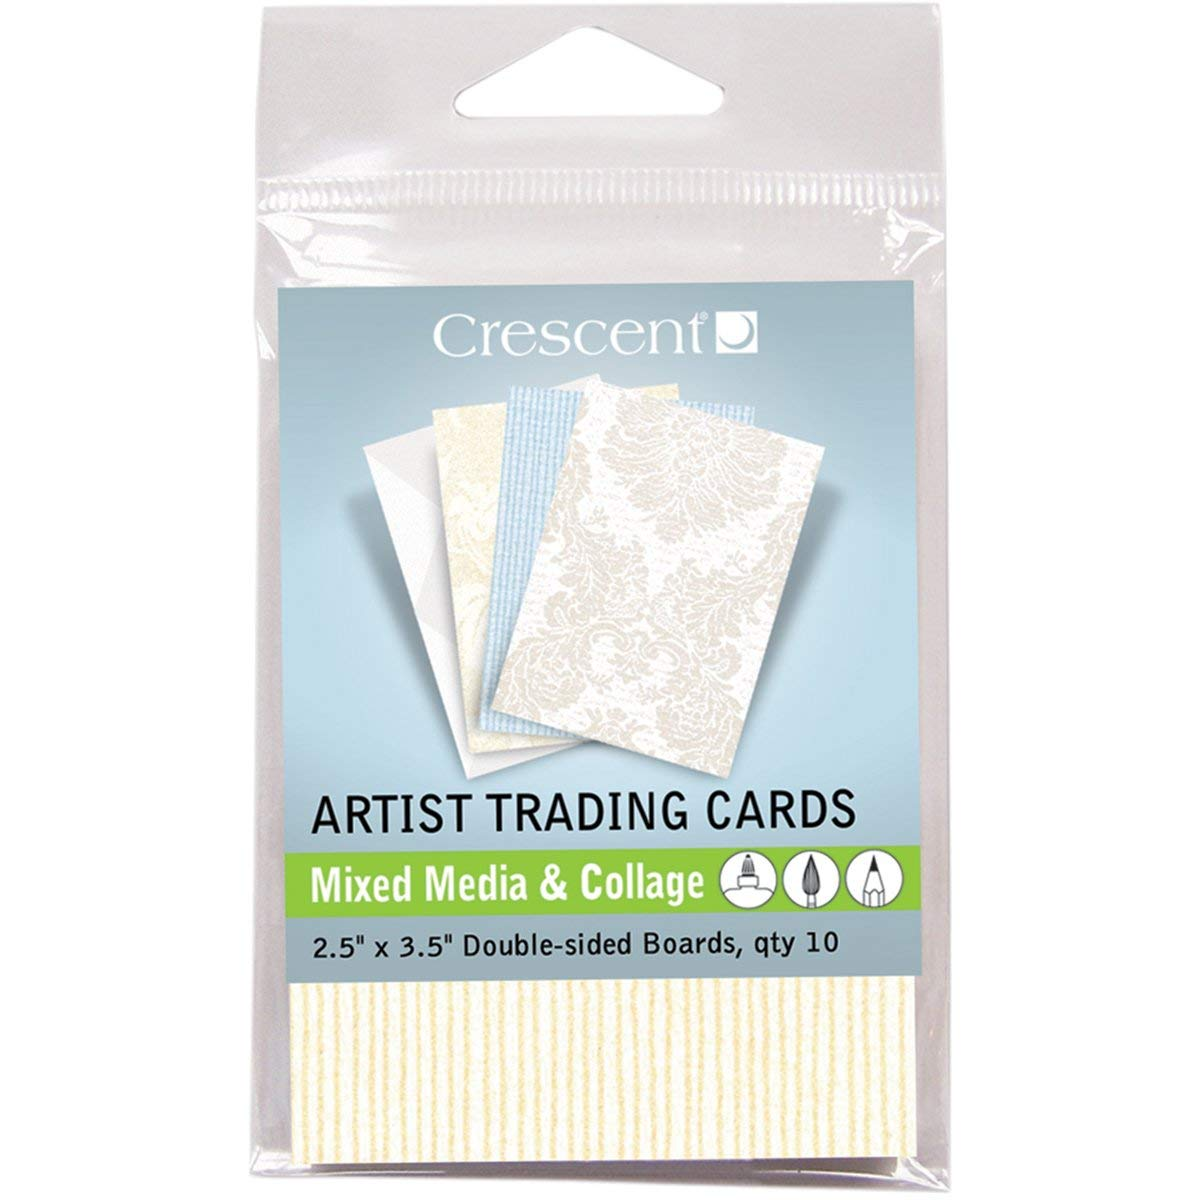 15 Pack Crescent Cardboard Artist Collage Trading Cards 2.5 by 3.5